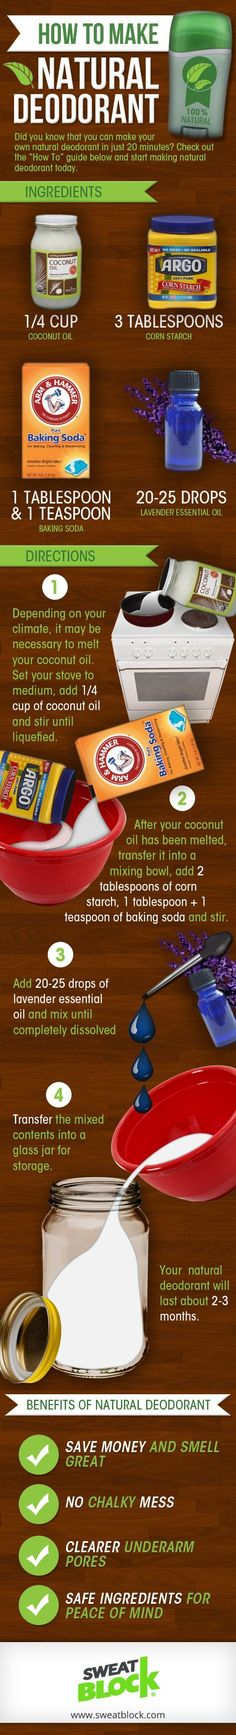 """Did you know that you can make your own natural deodorant in just 20 minutes? Check out the """"How To"""" guide below and start making natural deodorant today. Source:http://www.sweatblock.com/"""